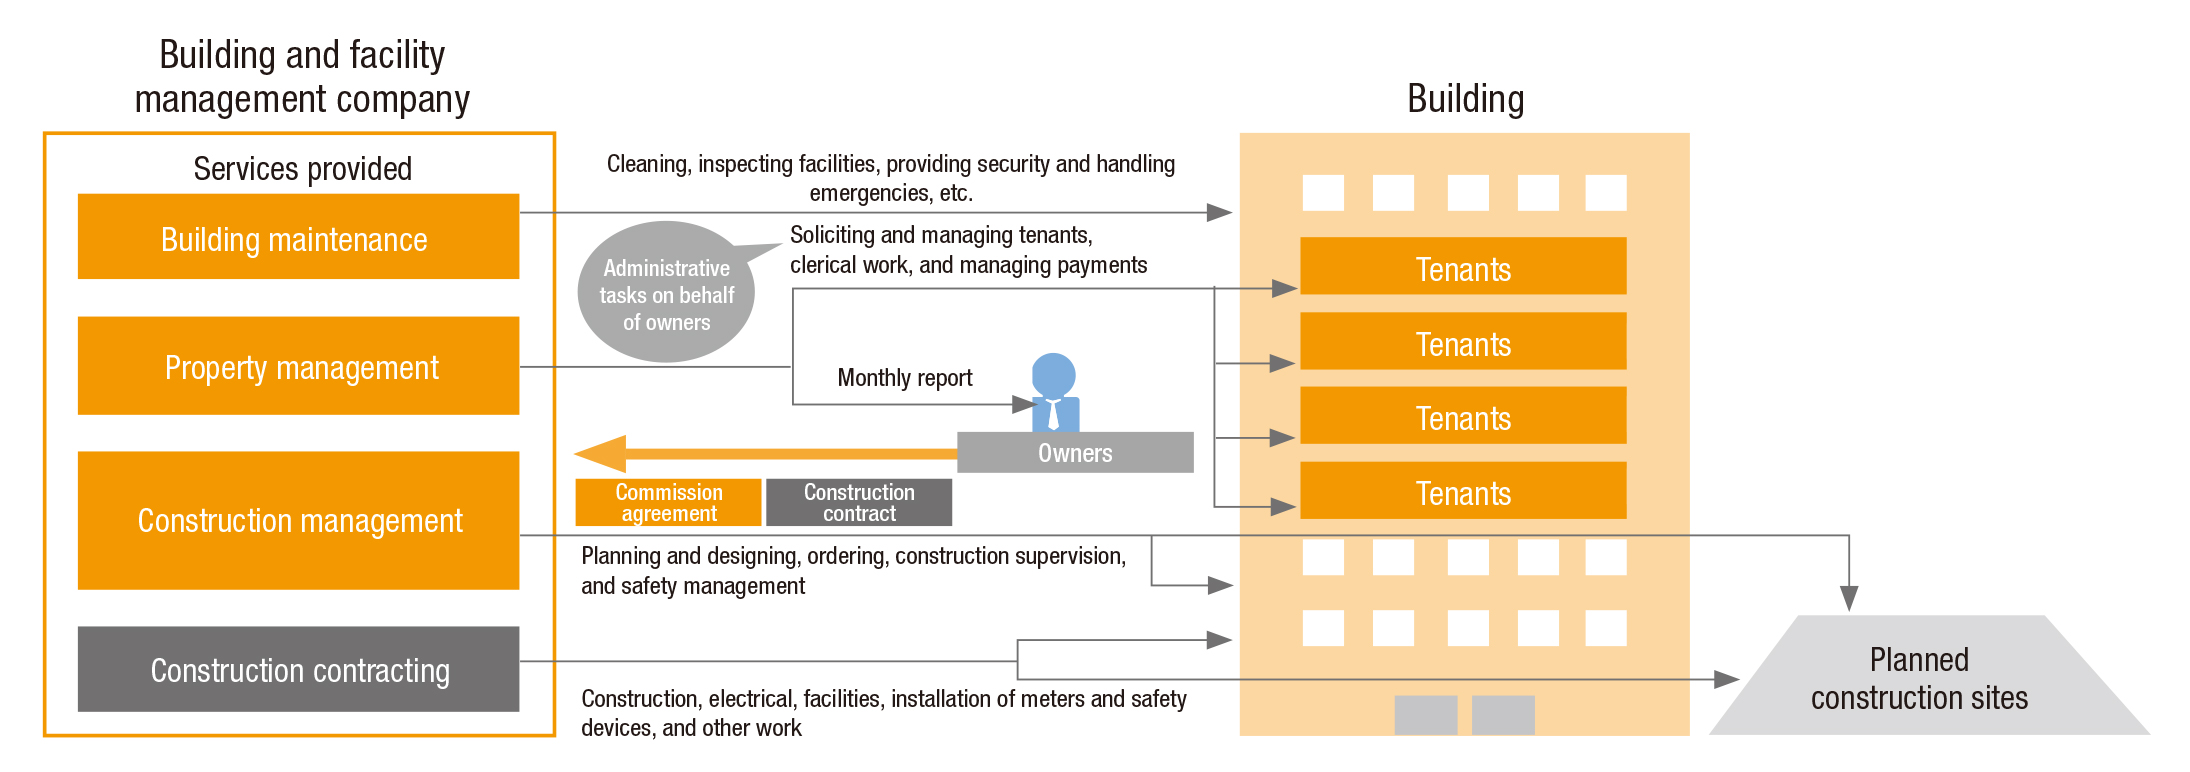 Overview of building and facility management